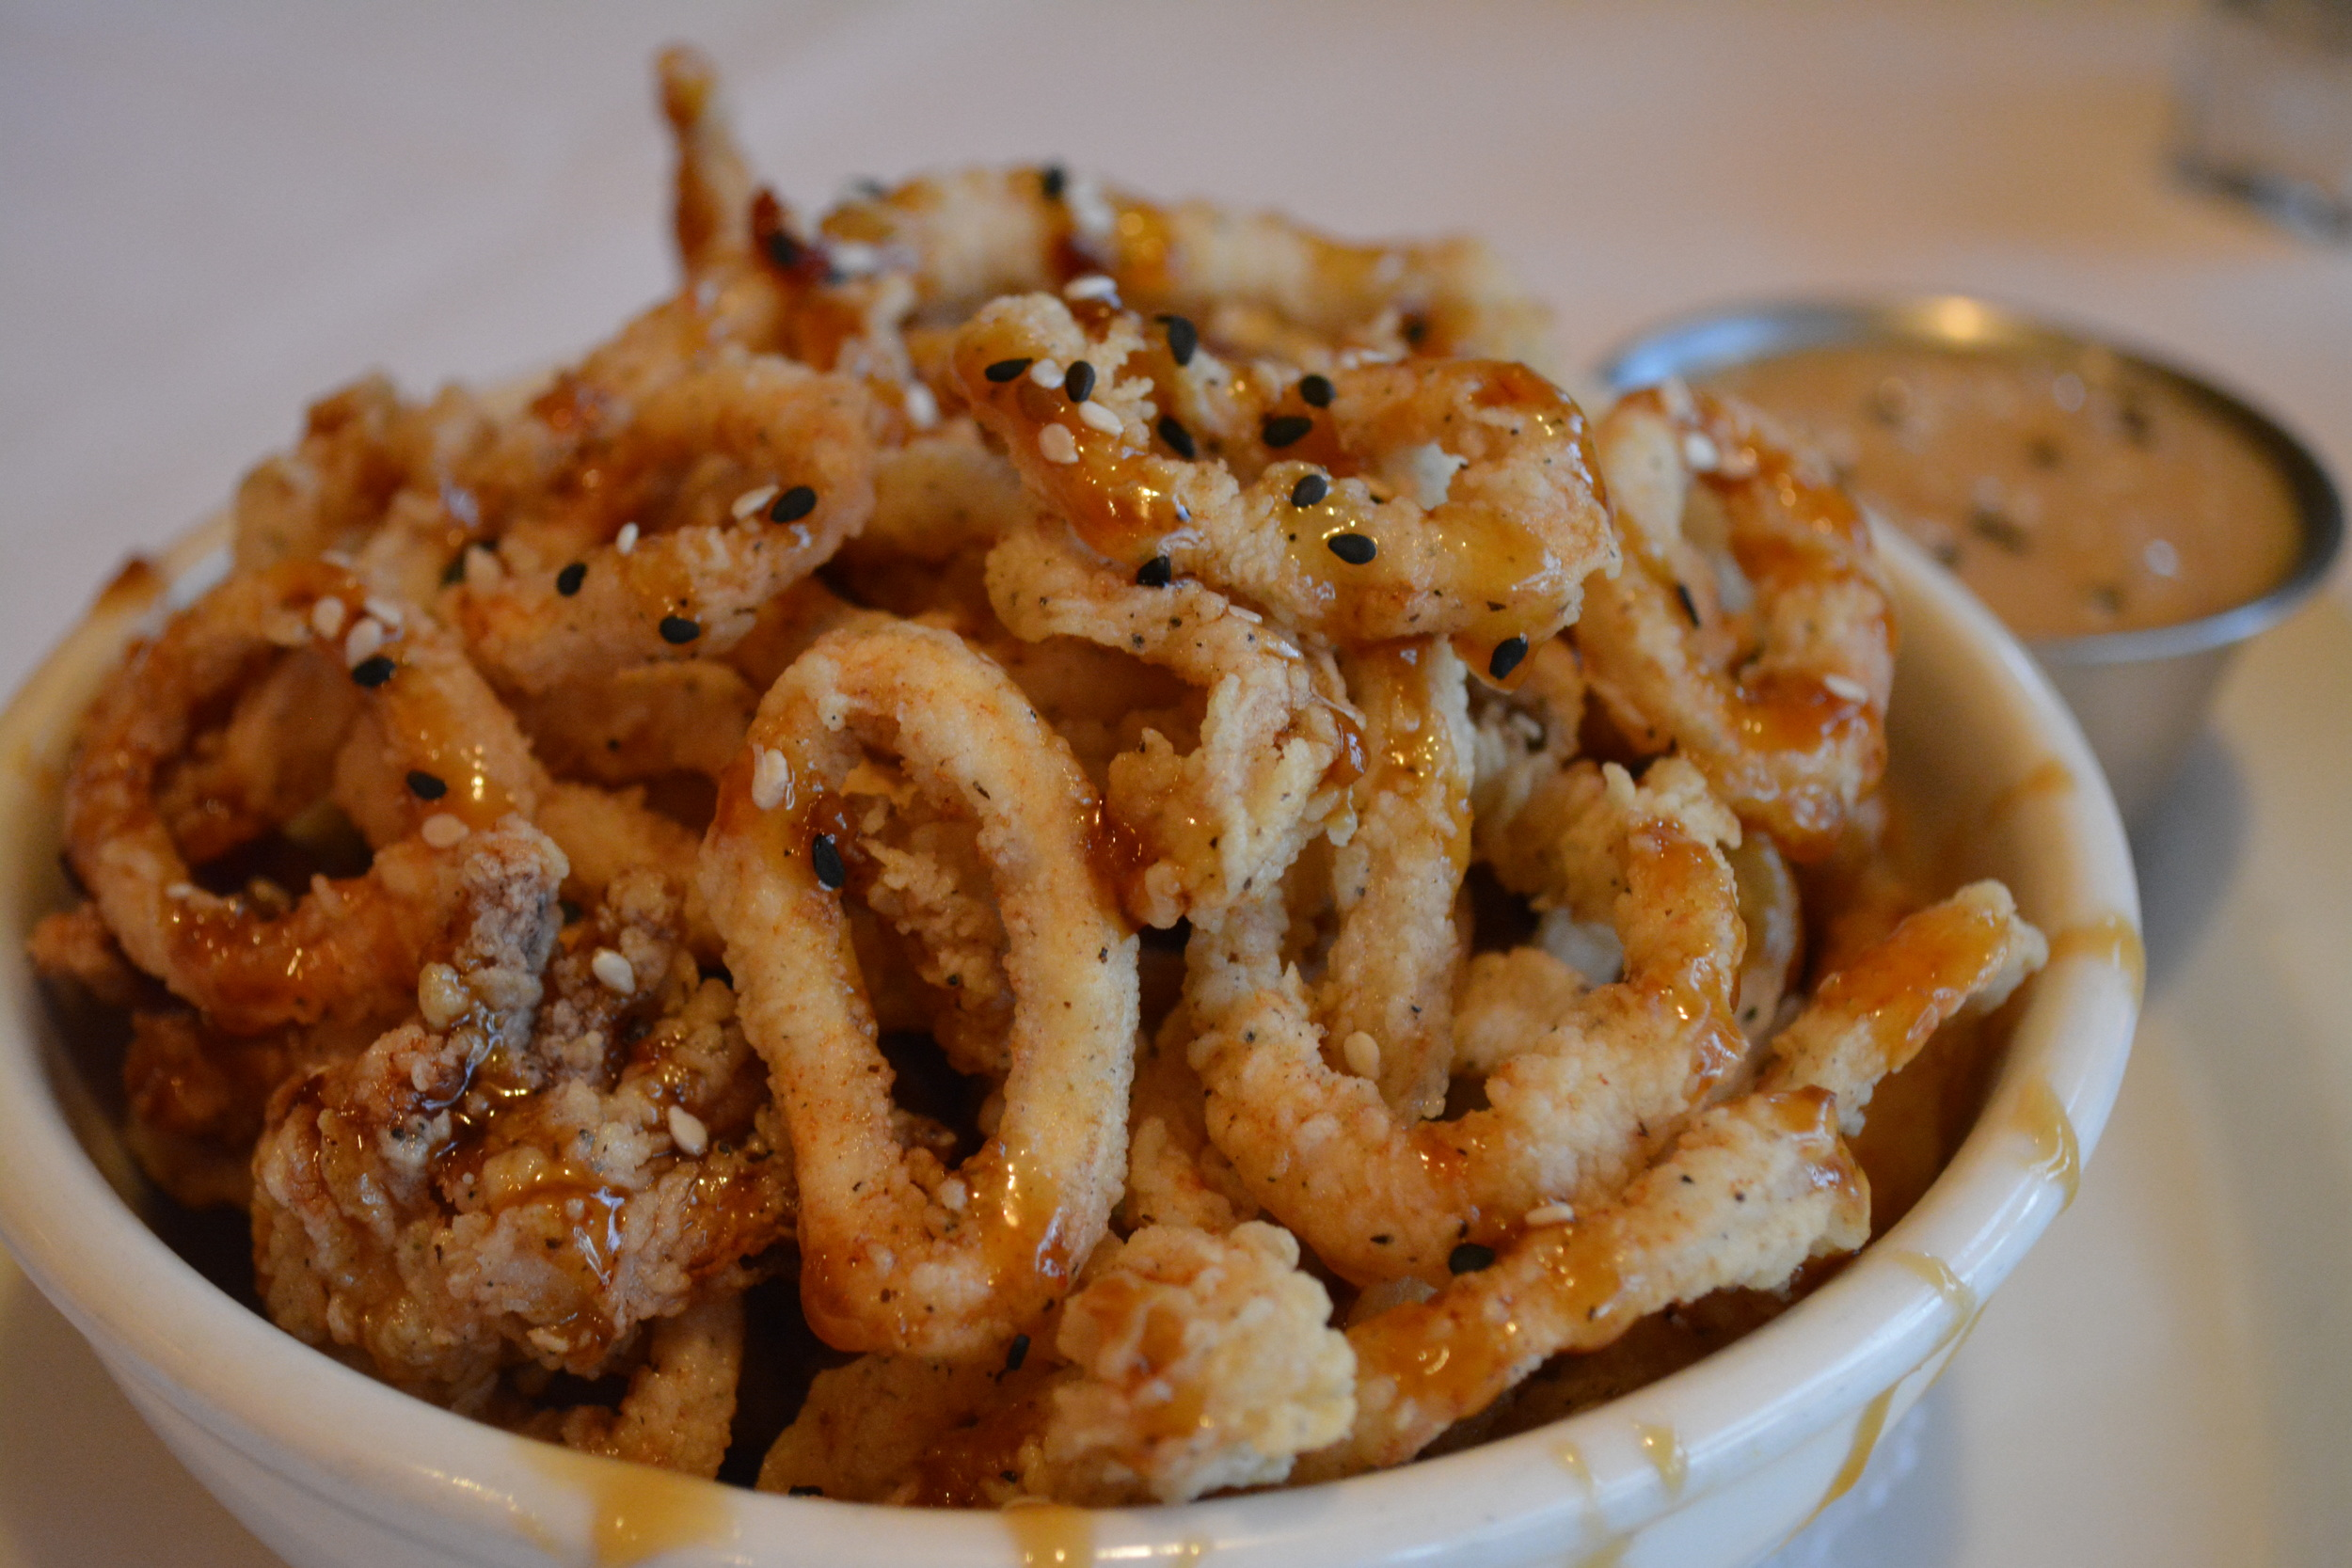 There's a nice crisp and kick to thin-sliced orange-sesame calamari.